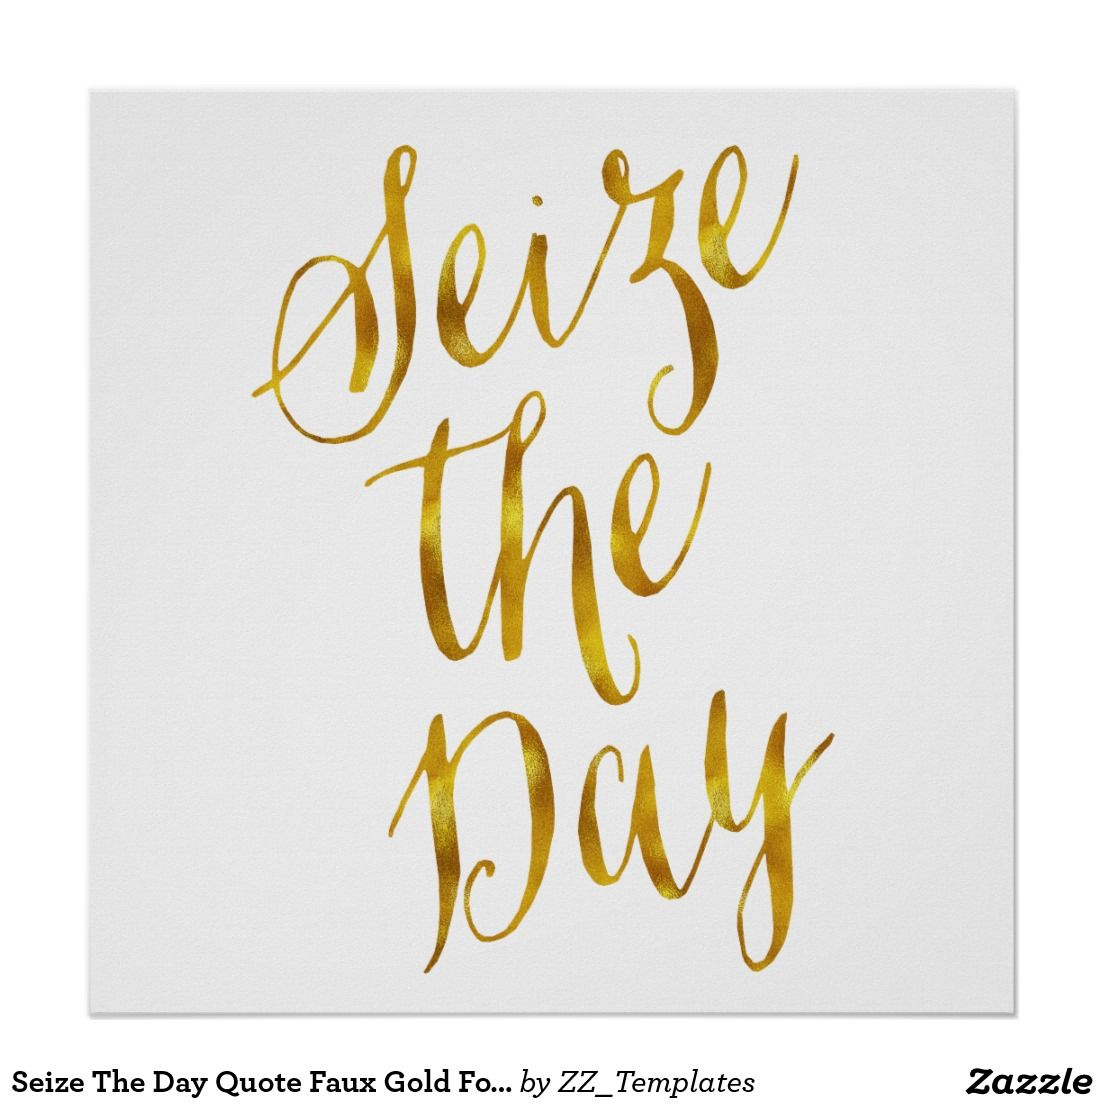 Zazzle poster design - Seize The Day Quote Faux Gold Foil Metallic Design Poster